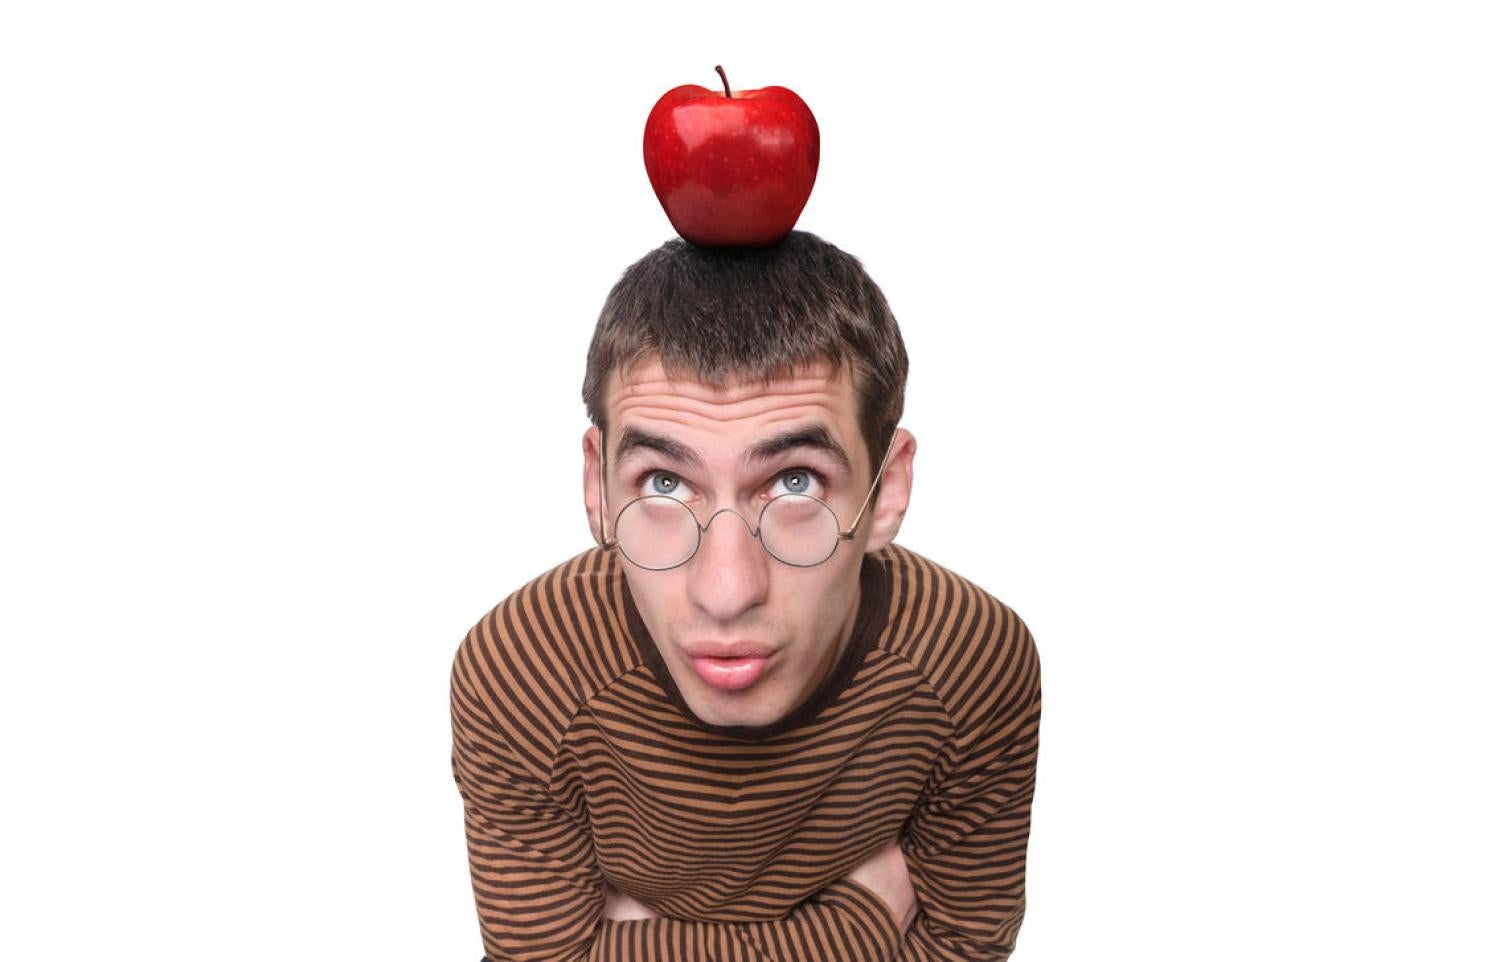 Photo of a man with an apple balanced on his head.